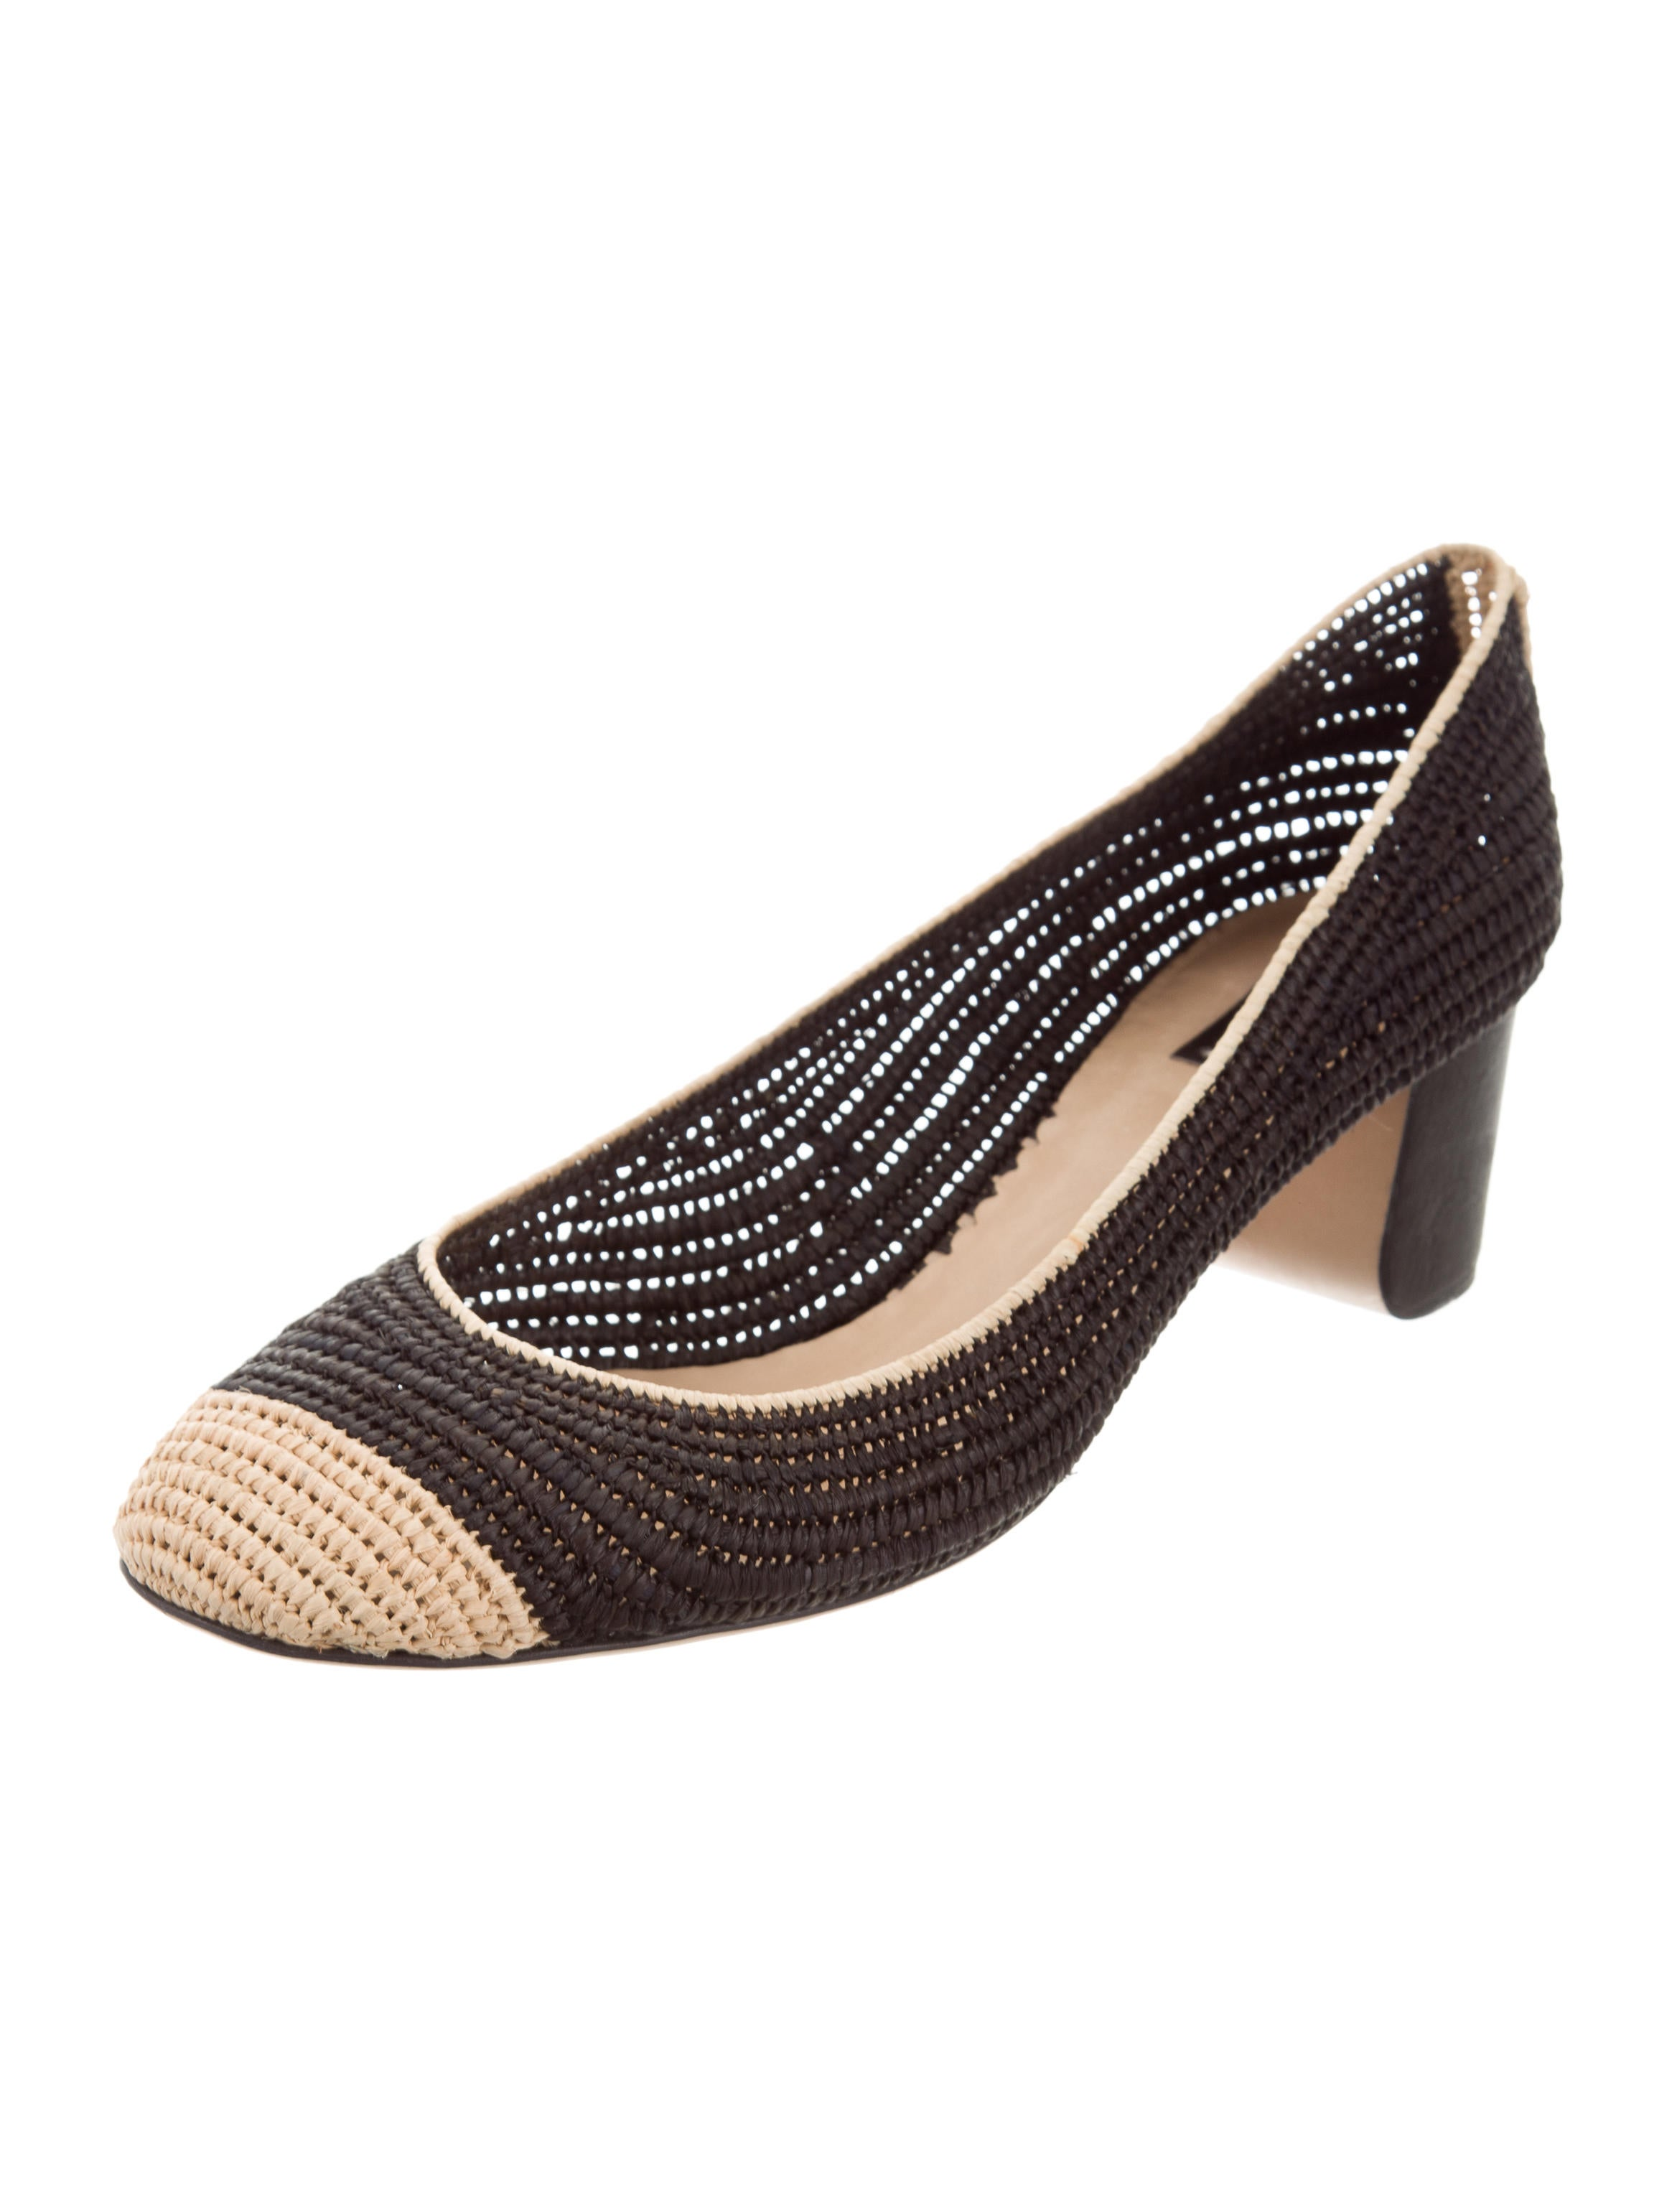 outlet cheap quality cheapest price sale online Reed Krakoff Straw Round-Toe Pumps outlet cost Z186R